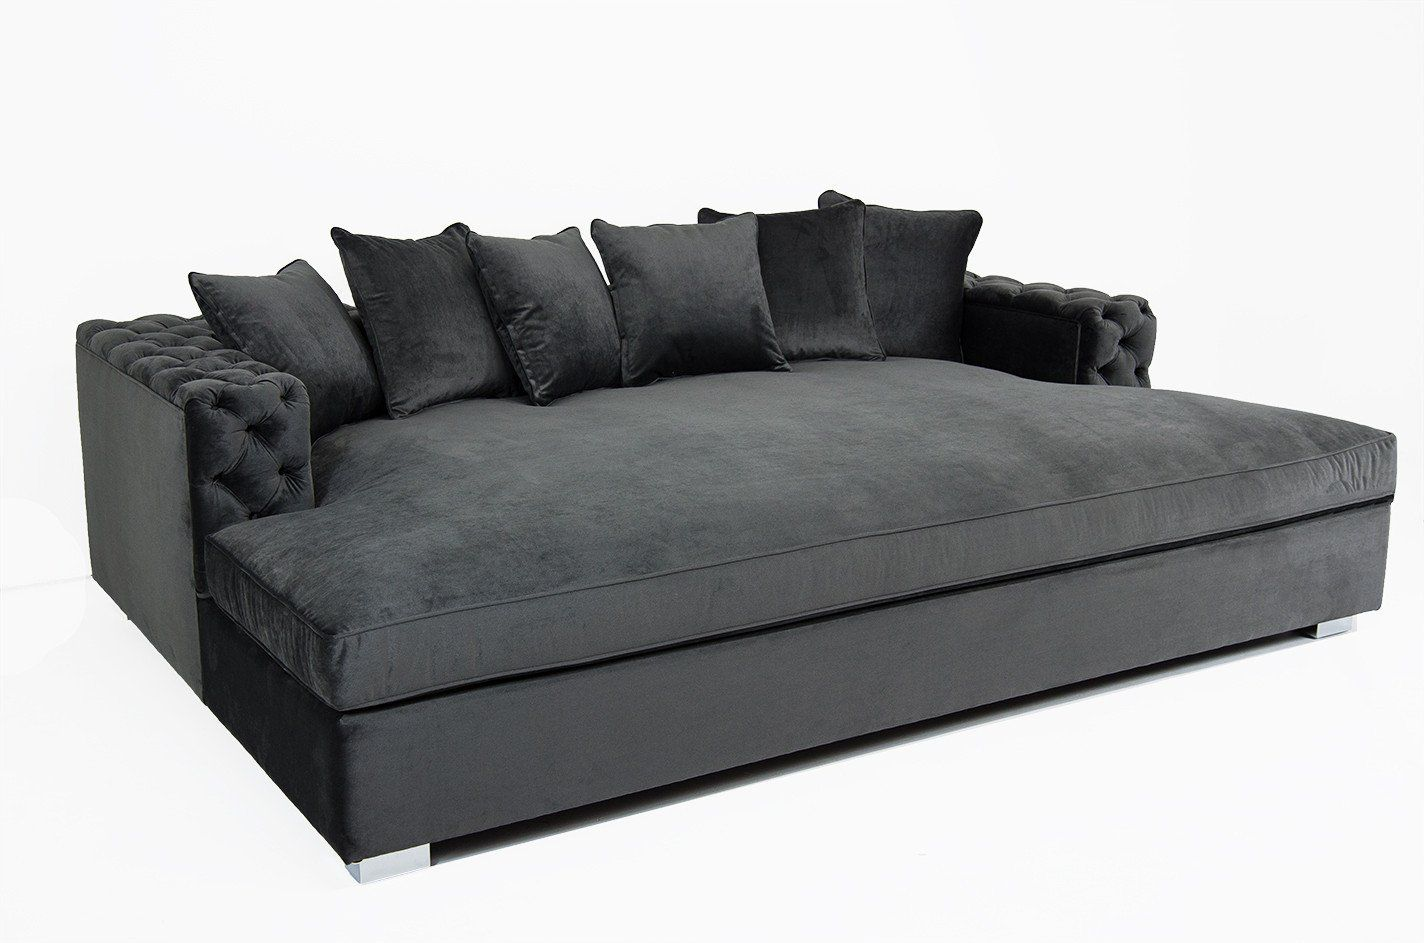 35 Elegant Comfortable Daybeds Living Room Daybed Sofa Sofa